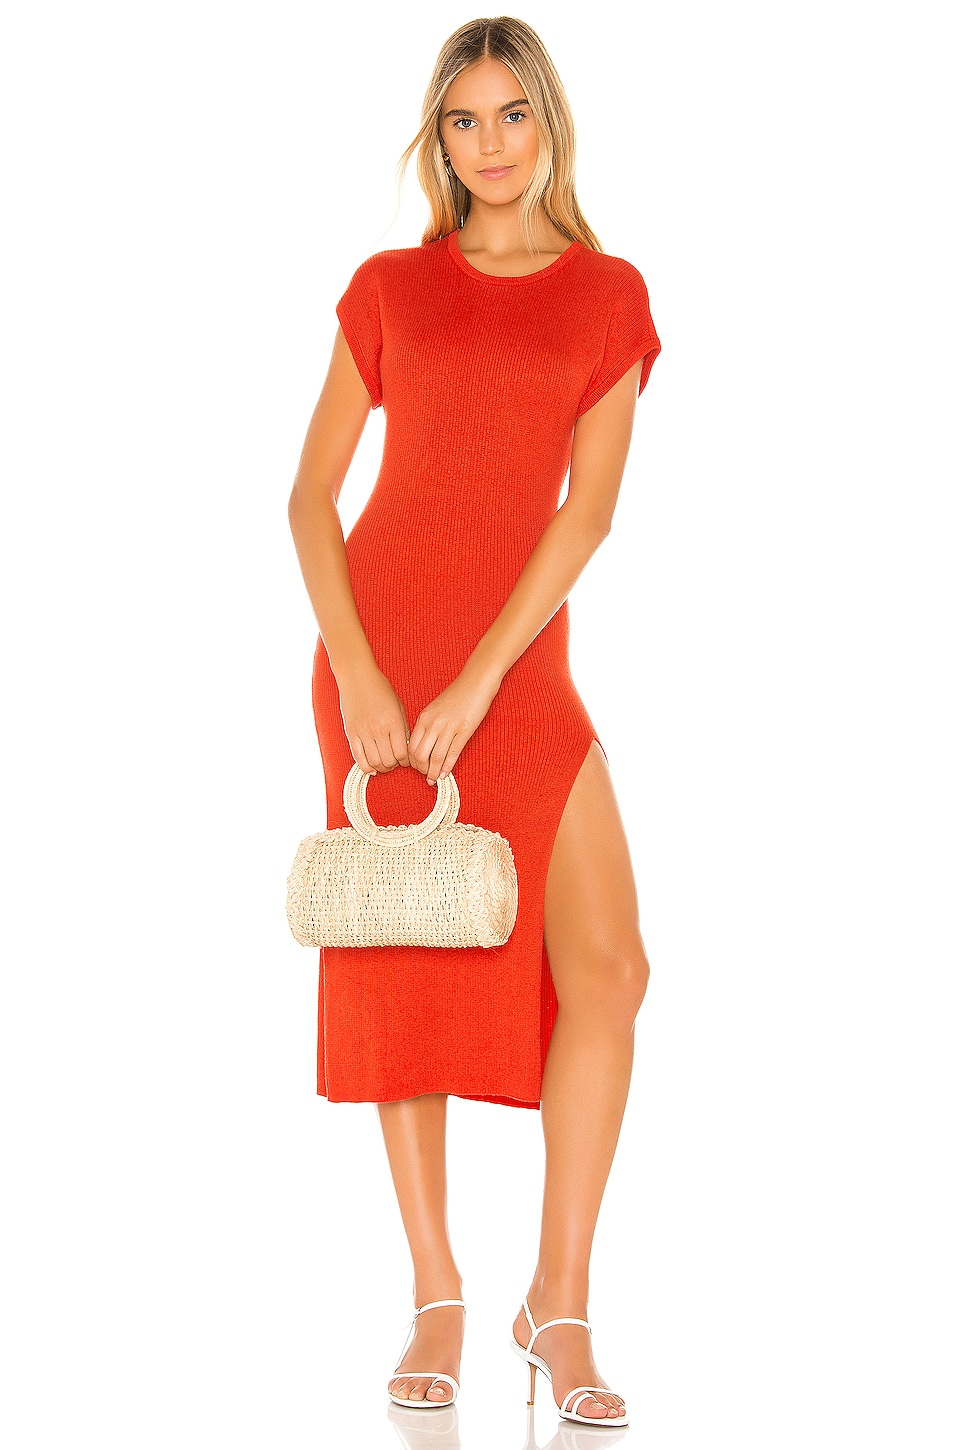 Tularosa Tori Dress in Tangerine